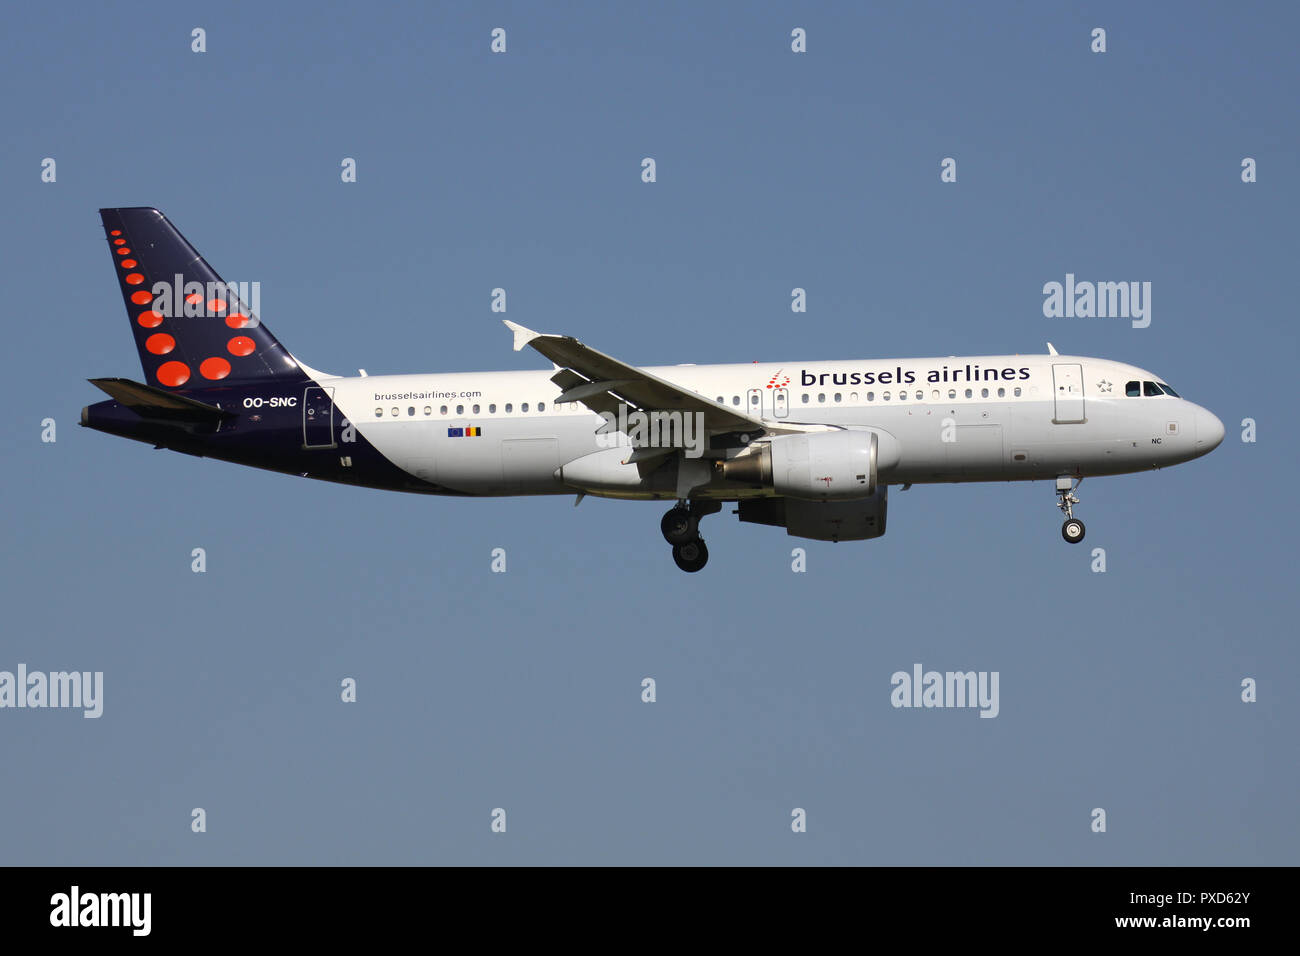 Belgian Brussels Airlines Airbus A320-200 with registration OO-SNC on short final for runway 01 of Brussels Airport. - Stock Image